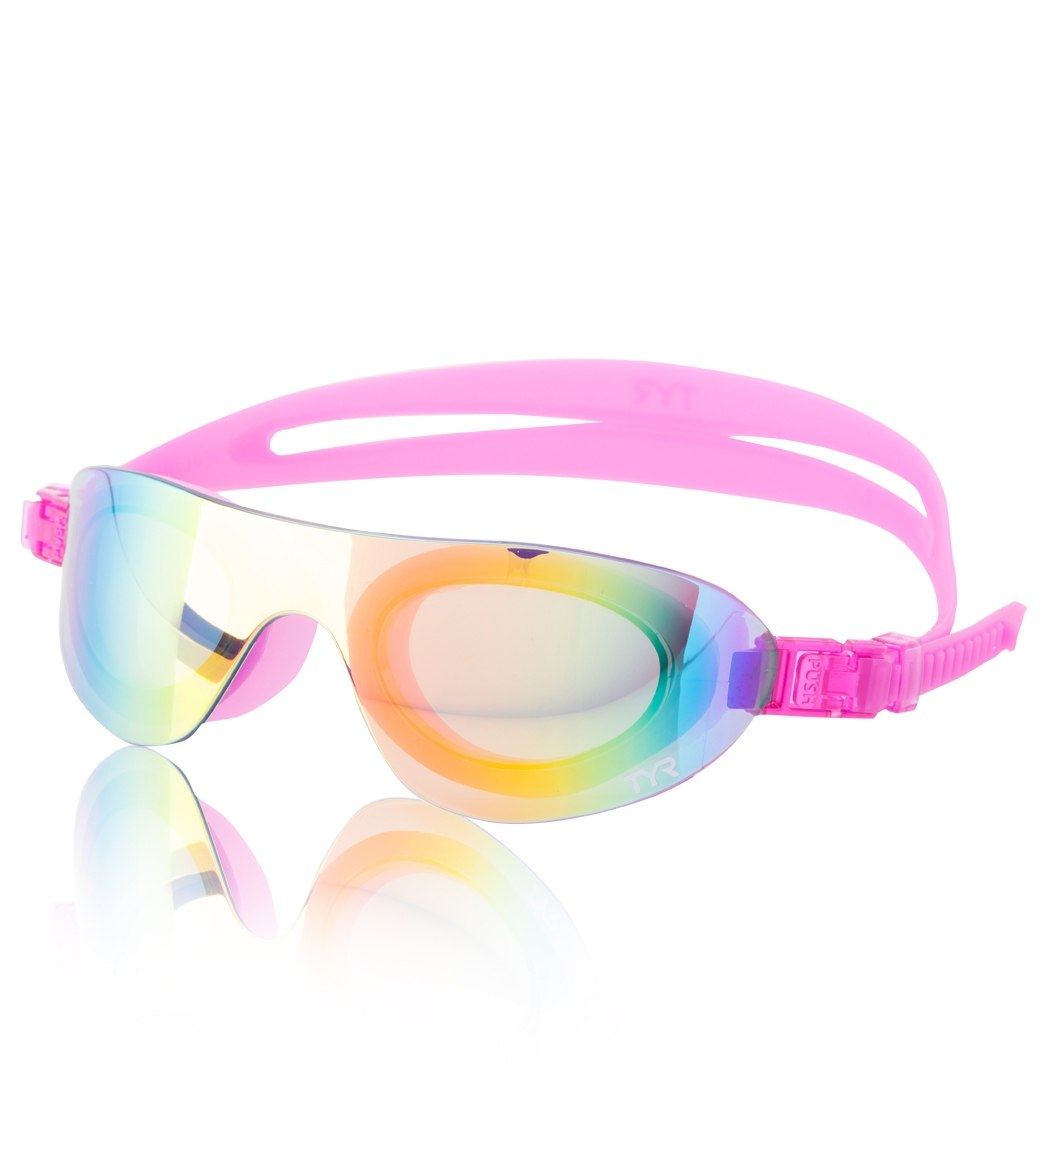 a592bb38a36 TYR Swim Shades Mirrored Active Goggle at SwimOutlet.com